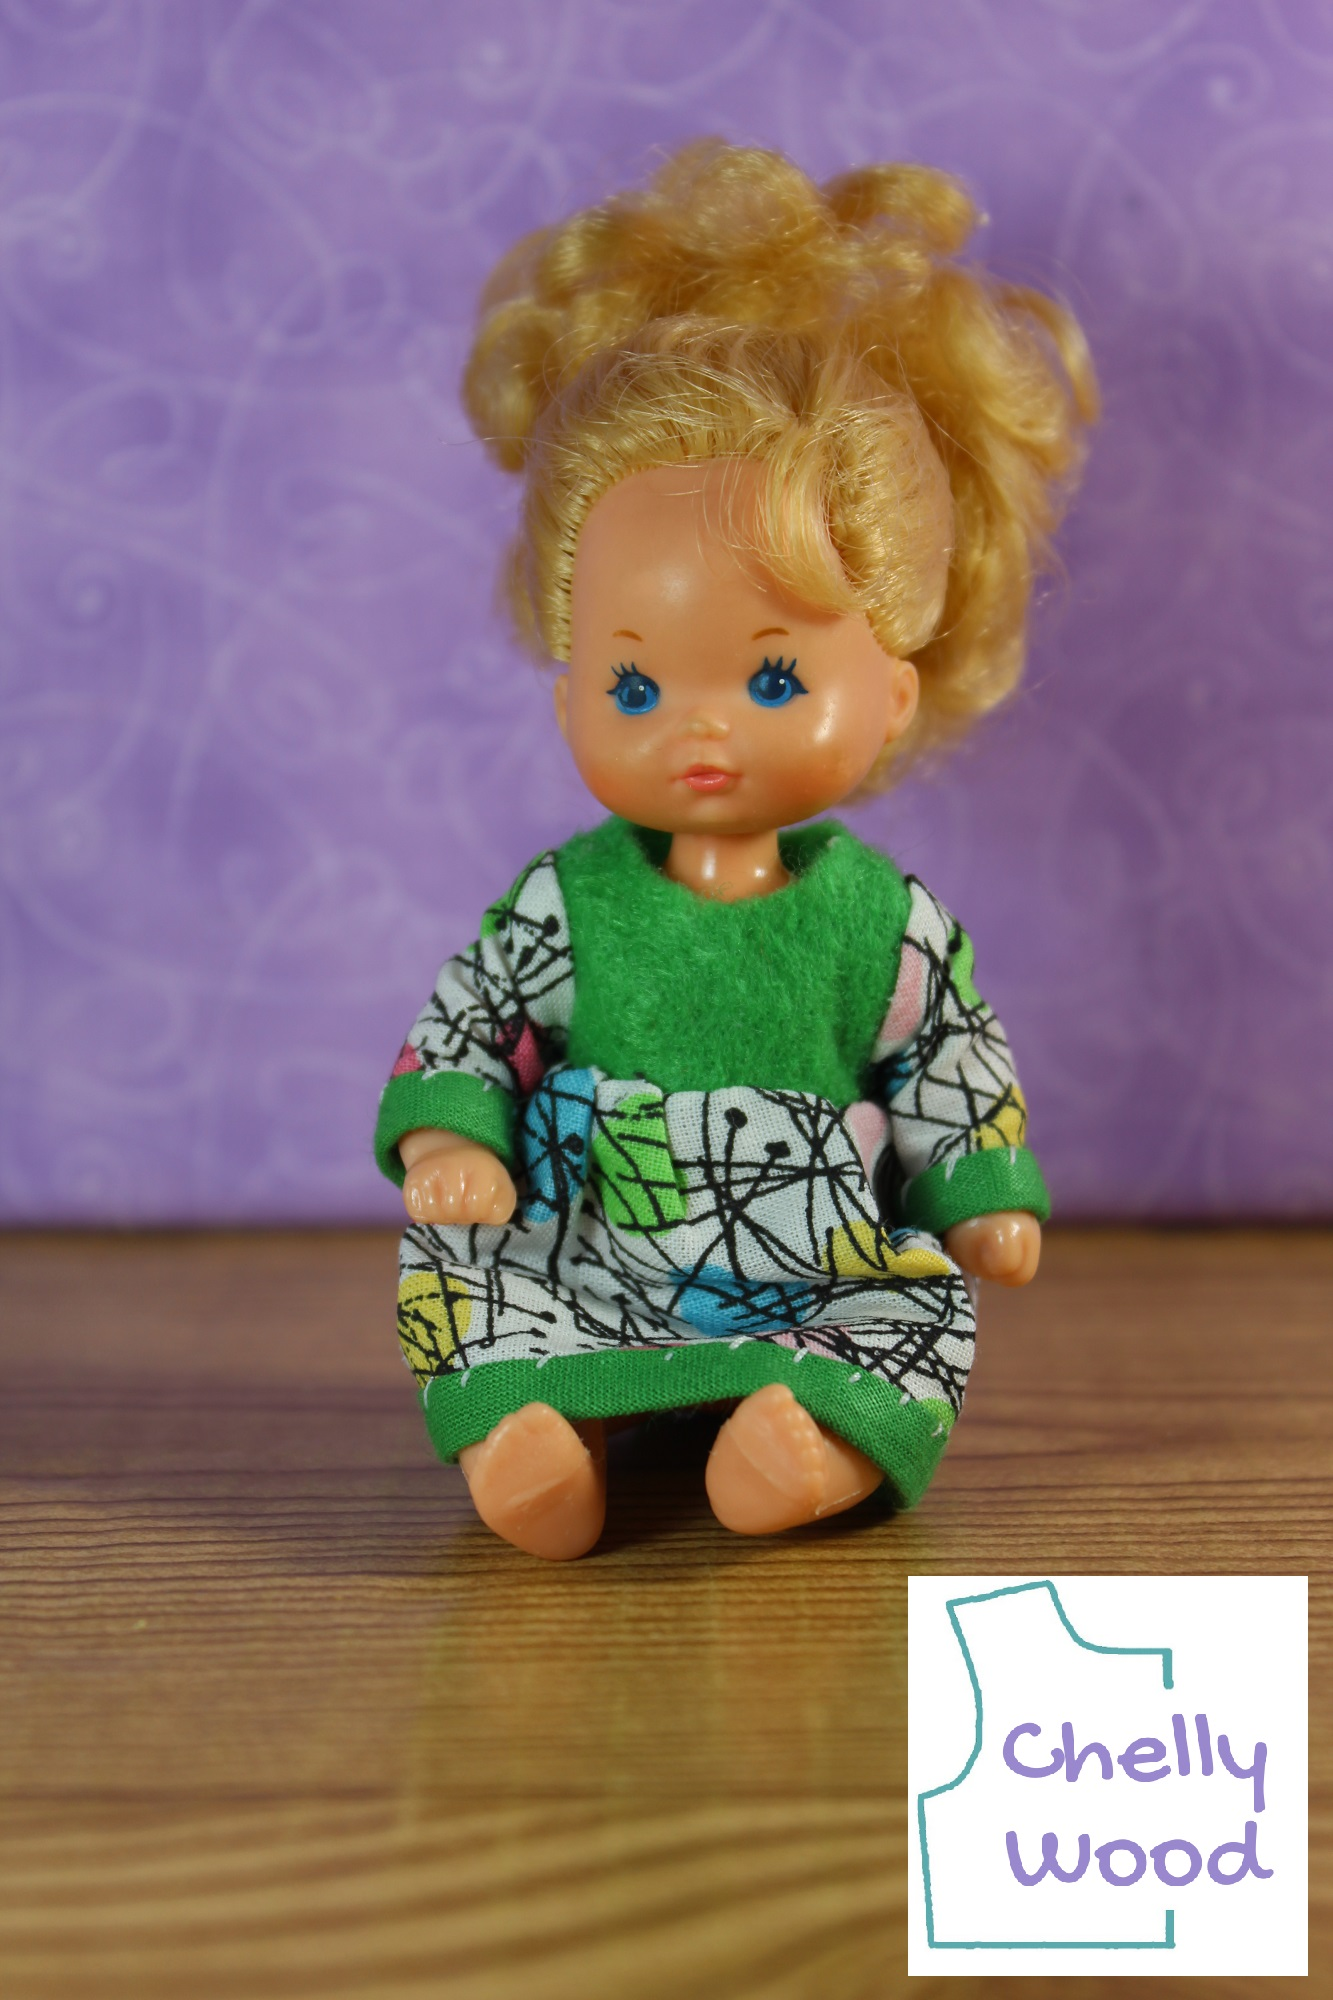 This image shows a Heart Family baby doll modeling a handmade green and white and multicolored dress. Patterns for making this dress with its long sleeves and bias tape trim can be found at Chelly Wood dot com under the 4 inch doll clothes pattern collection. This image of the Heart Family doll shows the little baby looking slightly to her right with her pale blue eyes. She's seated on a wooden floor with a purple backdrop behind her.